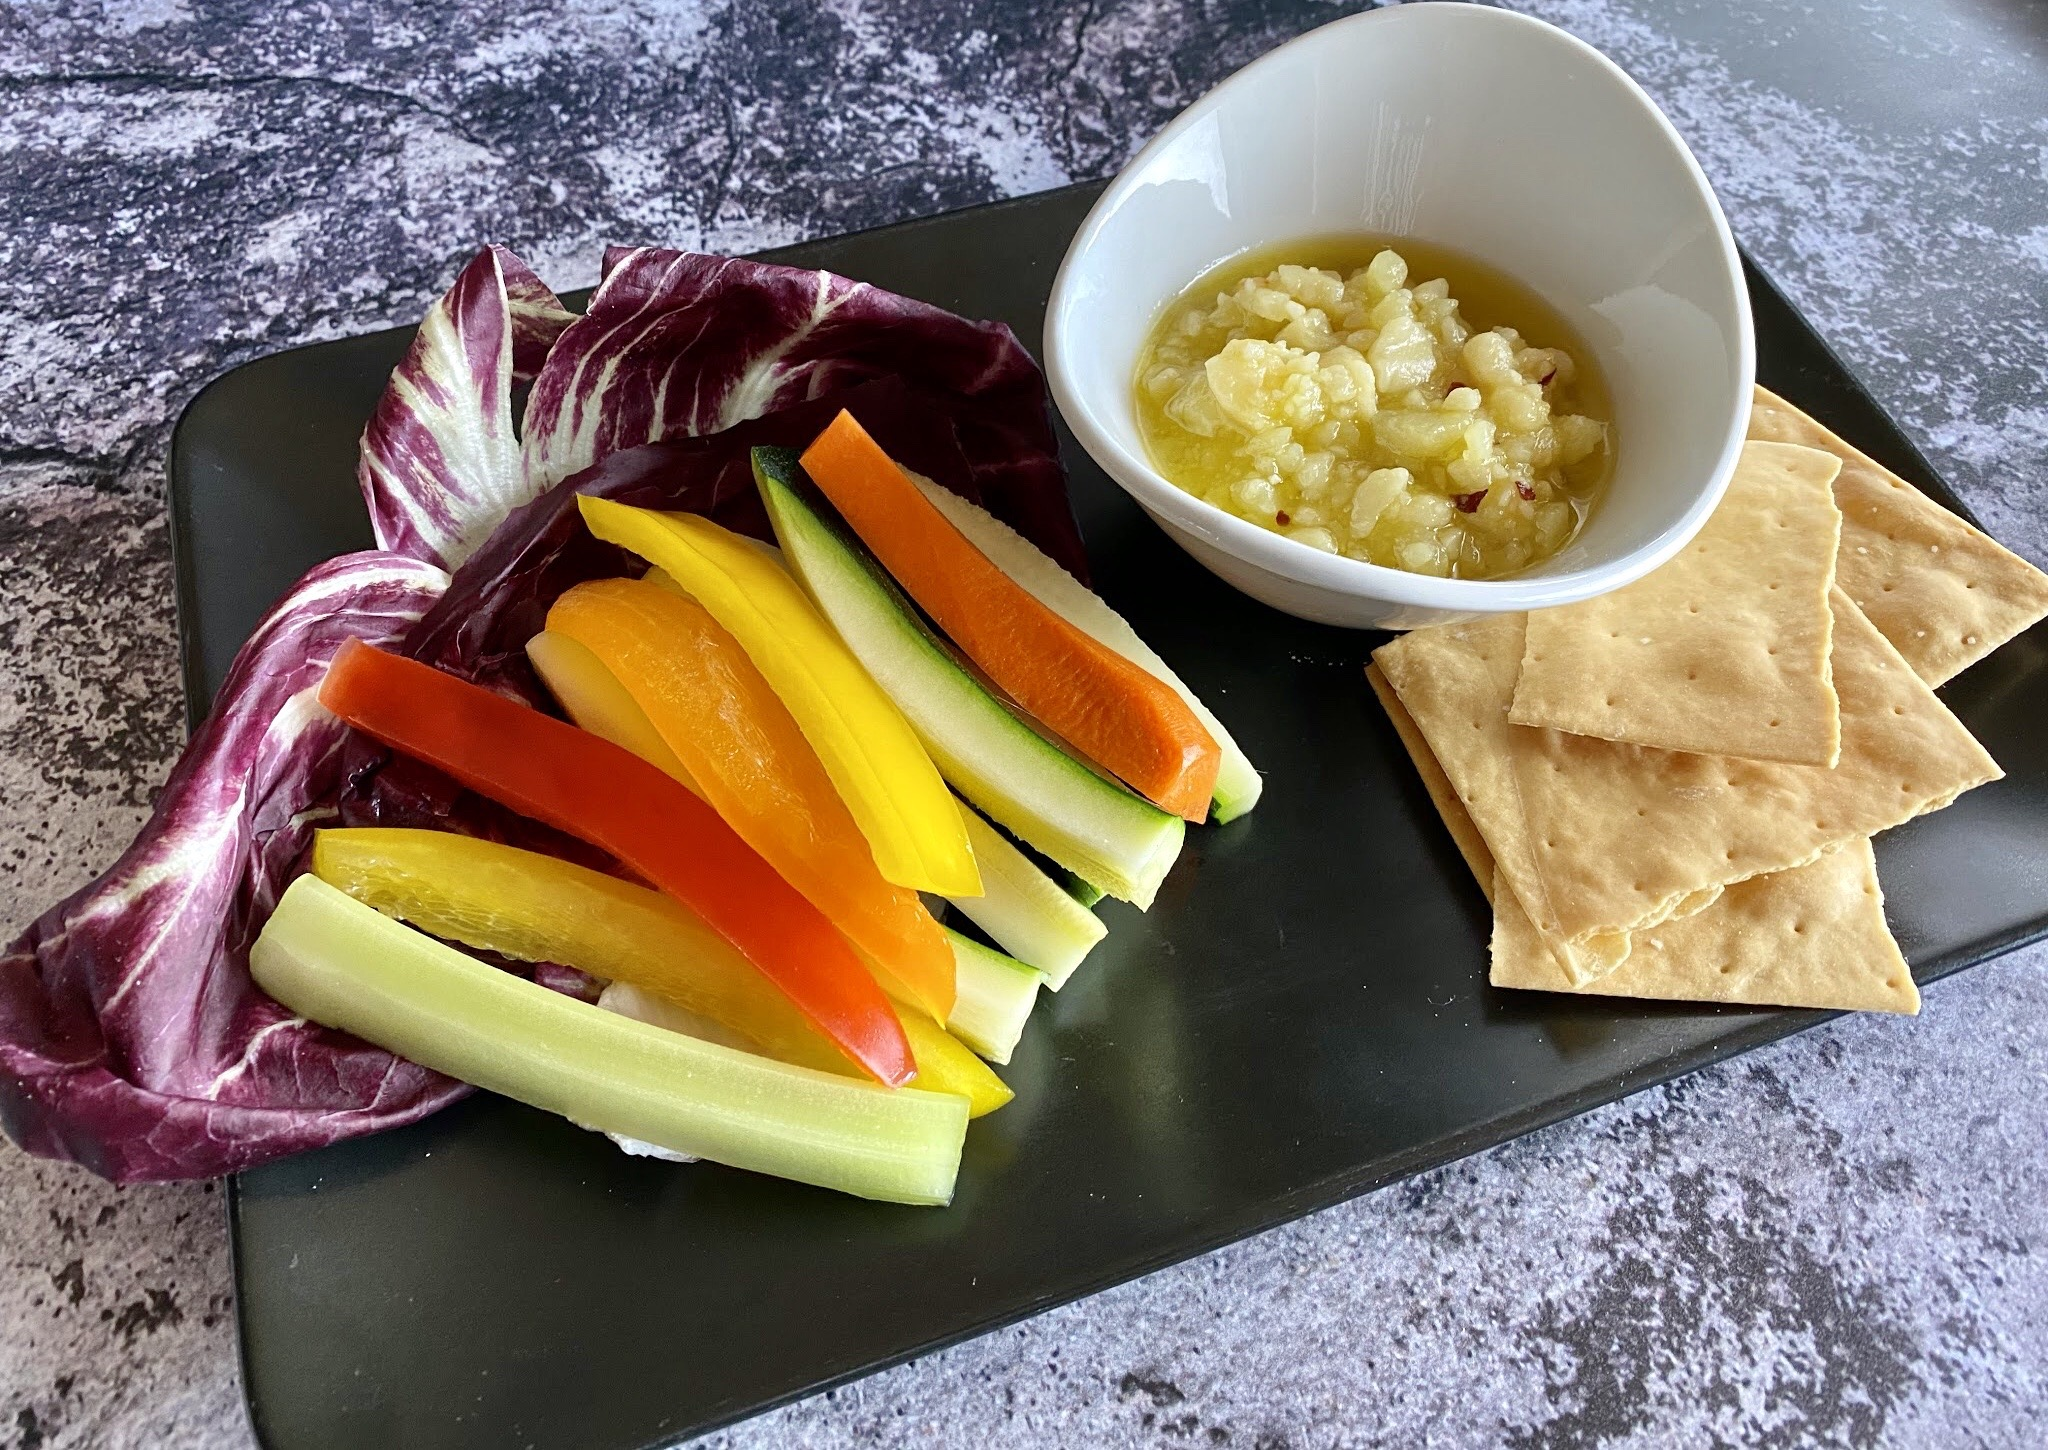 Two Graces - Glop made of parmesan, asiago, red chilis, extra virgin olive oil served with seasonal vegetables and crackers